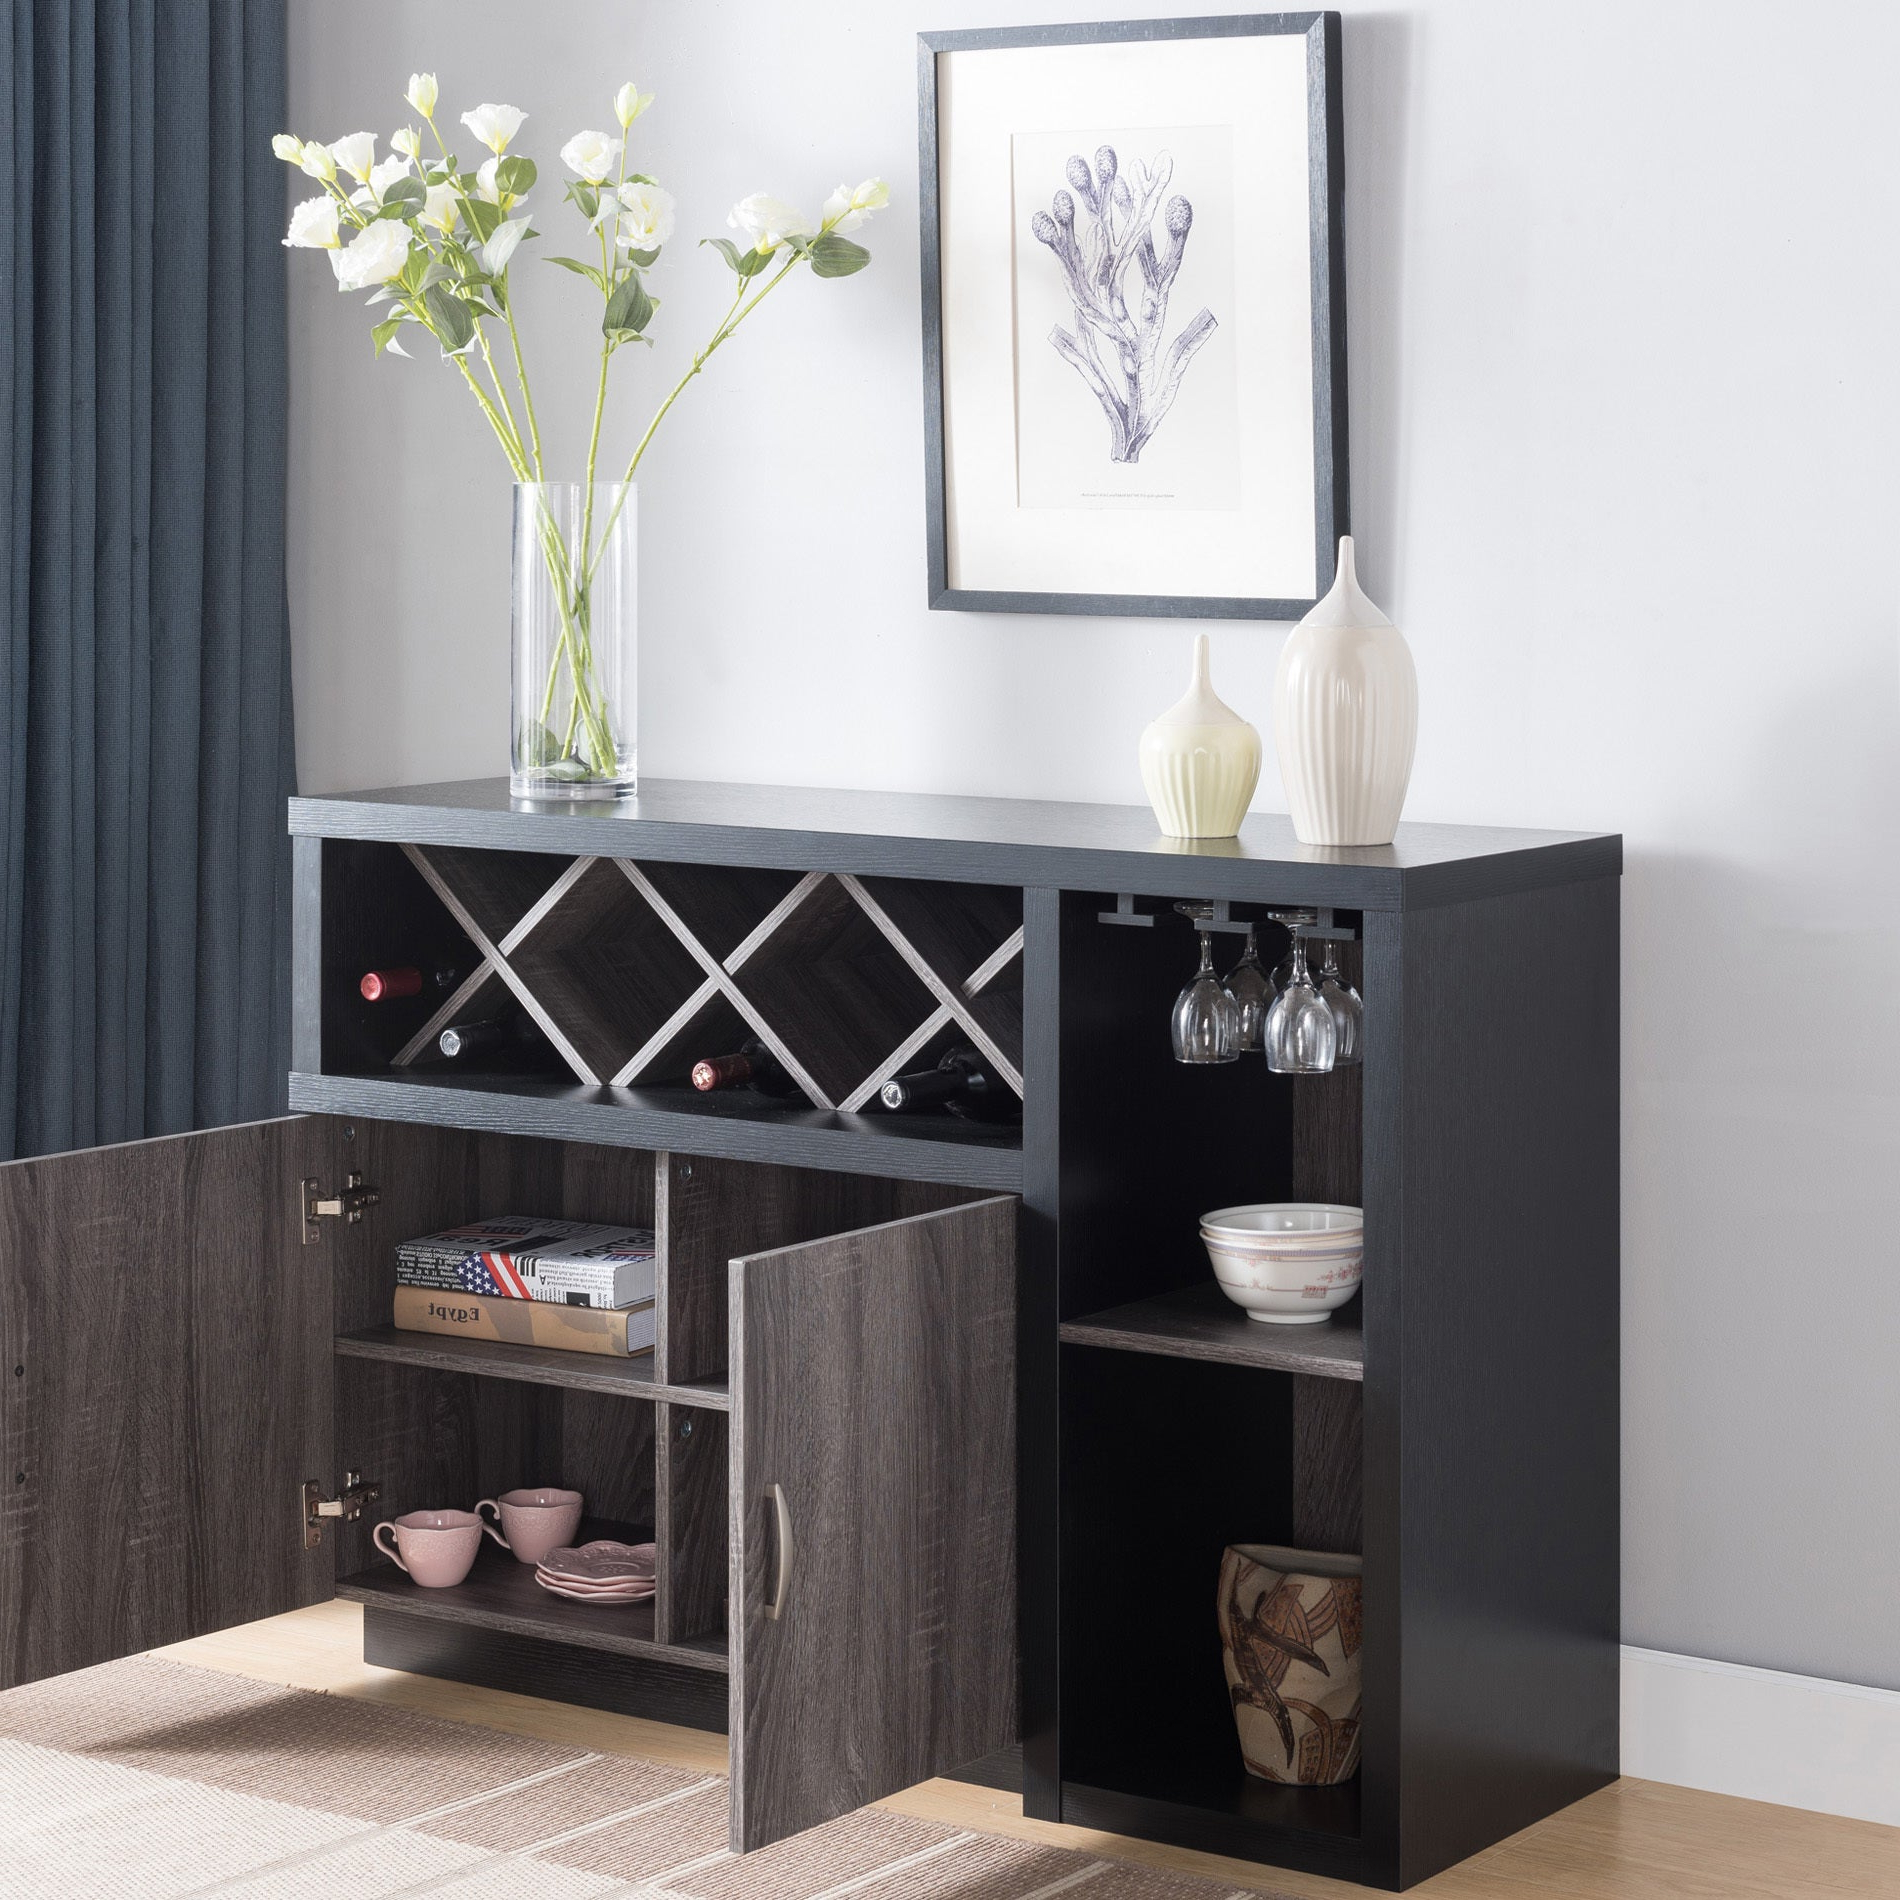 Lantana Contemporary Distressed Grey Buffetfoa Within Contemporary Style Wooden Buffets With Two Side Door Storage Cabinets (View 12 of 20)